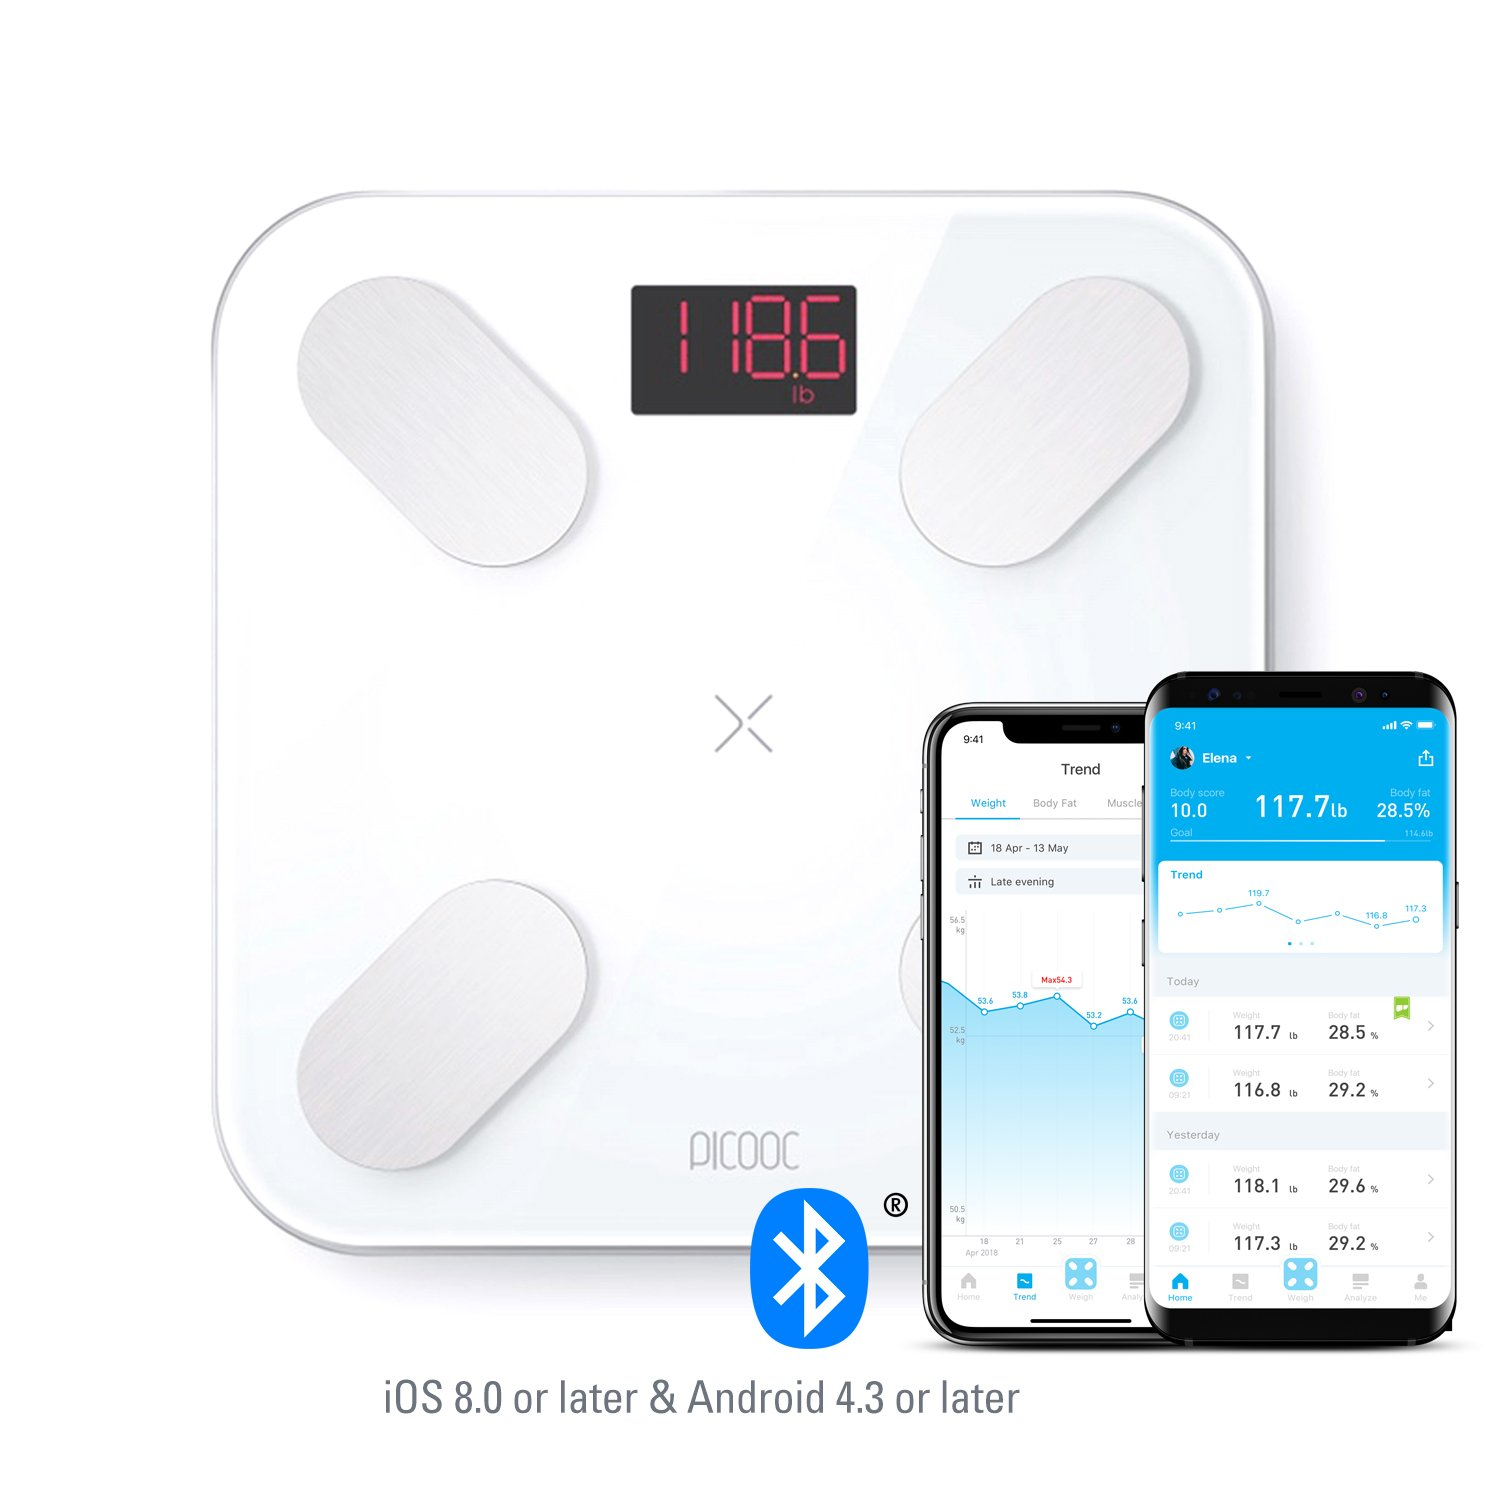 PICOOC MINI PRO Bluetooth Smart Body Fat Scale, Wireless Digital Bathroom Scale with IOS & Android App, Body Composition Monitor, 13 Measurements for Body Weight, Body Fat, BMI, Muscle and More, White